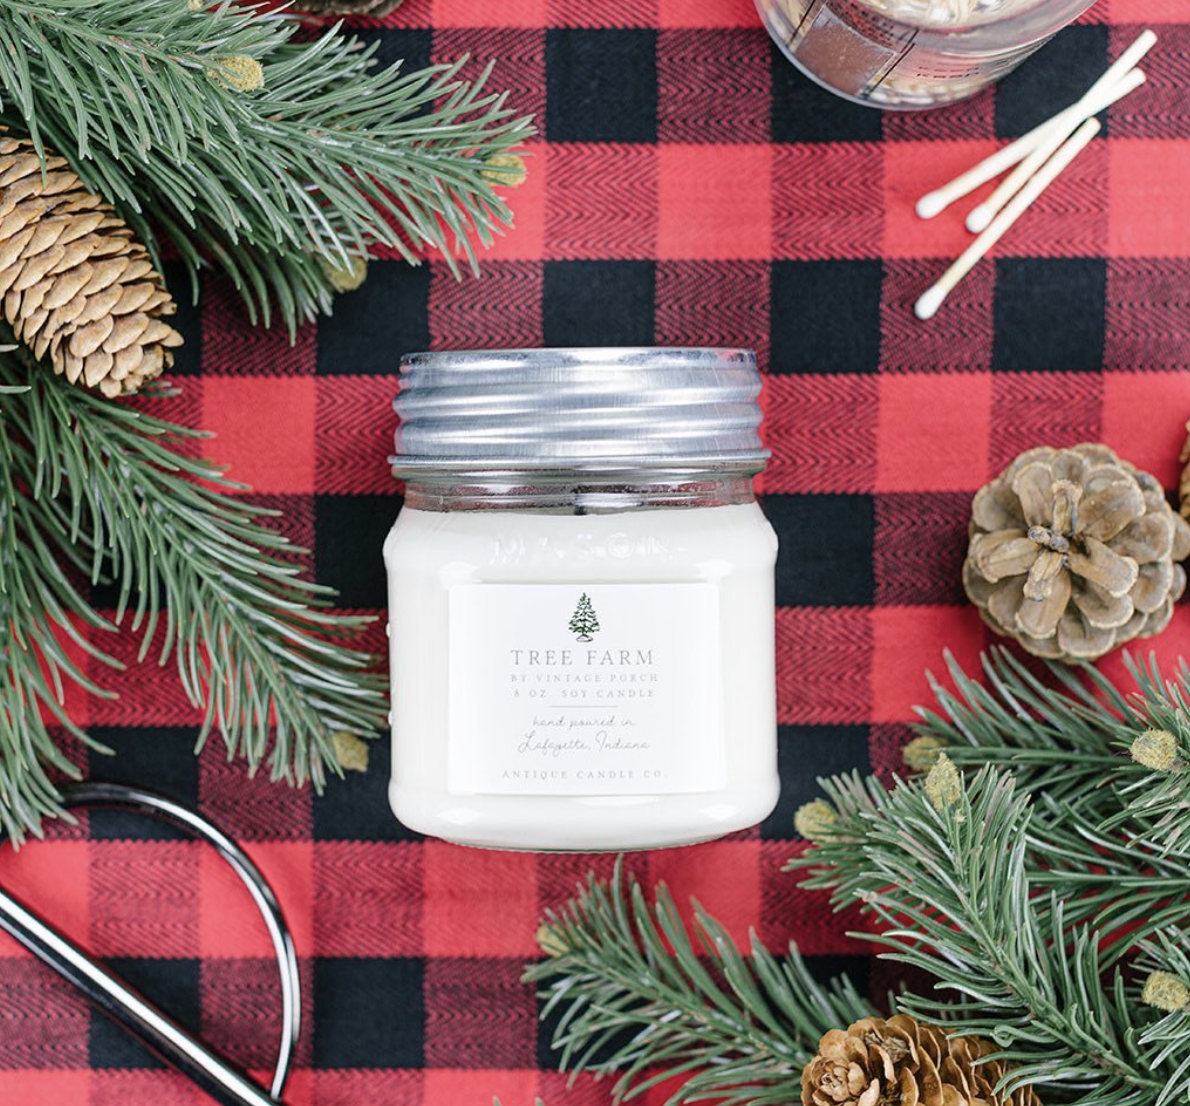 Tree Farm Candle smells just like a freshly cut Christmas tree kellyelko.com #candles #christmas #christmasgifts #giftguide #giftsforher